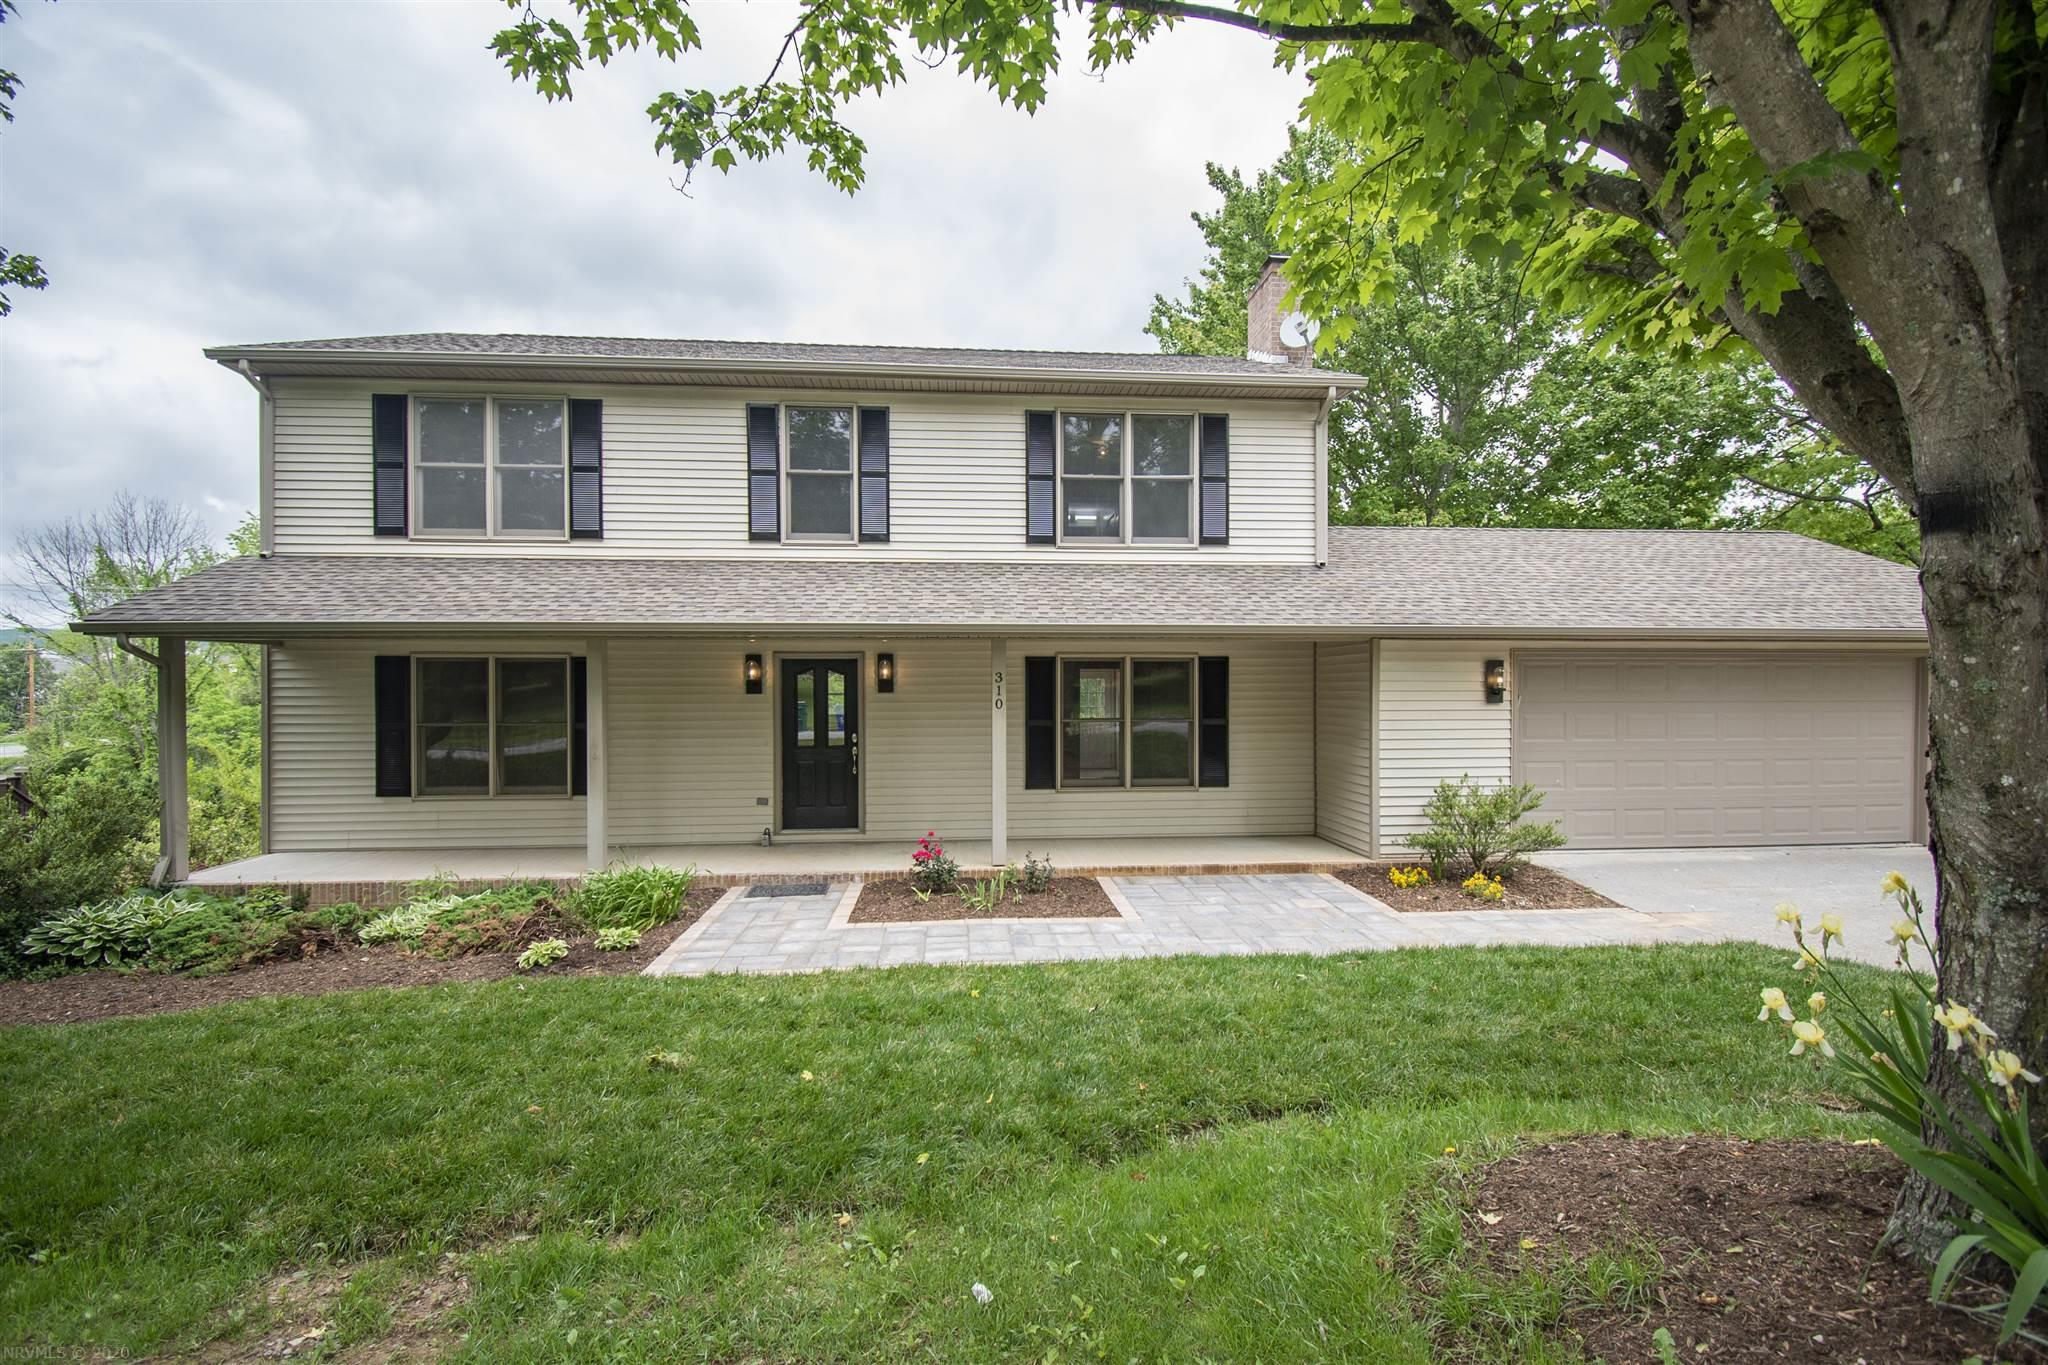 Very spacious home right in Blacksburg that has been completely remodeled. Granite counter tops in the kitchen , stainless steel appliances, Tile shower and walk in closet in the master, this home has so much space for a family or entertaining.  Featuring nice patio and gardening area, fenced yard and  two car garage.